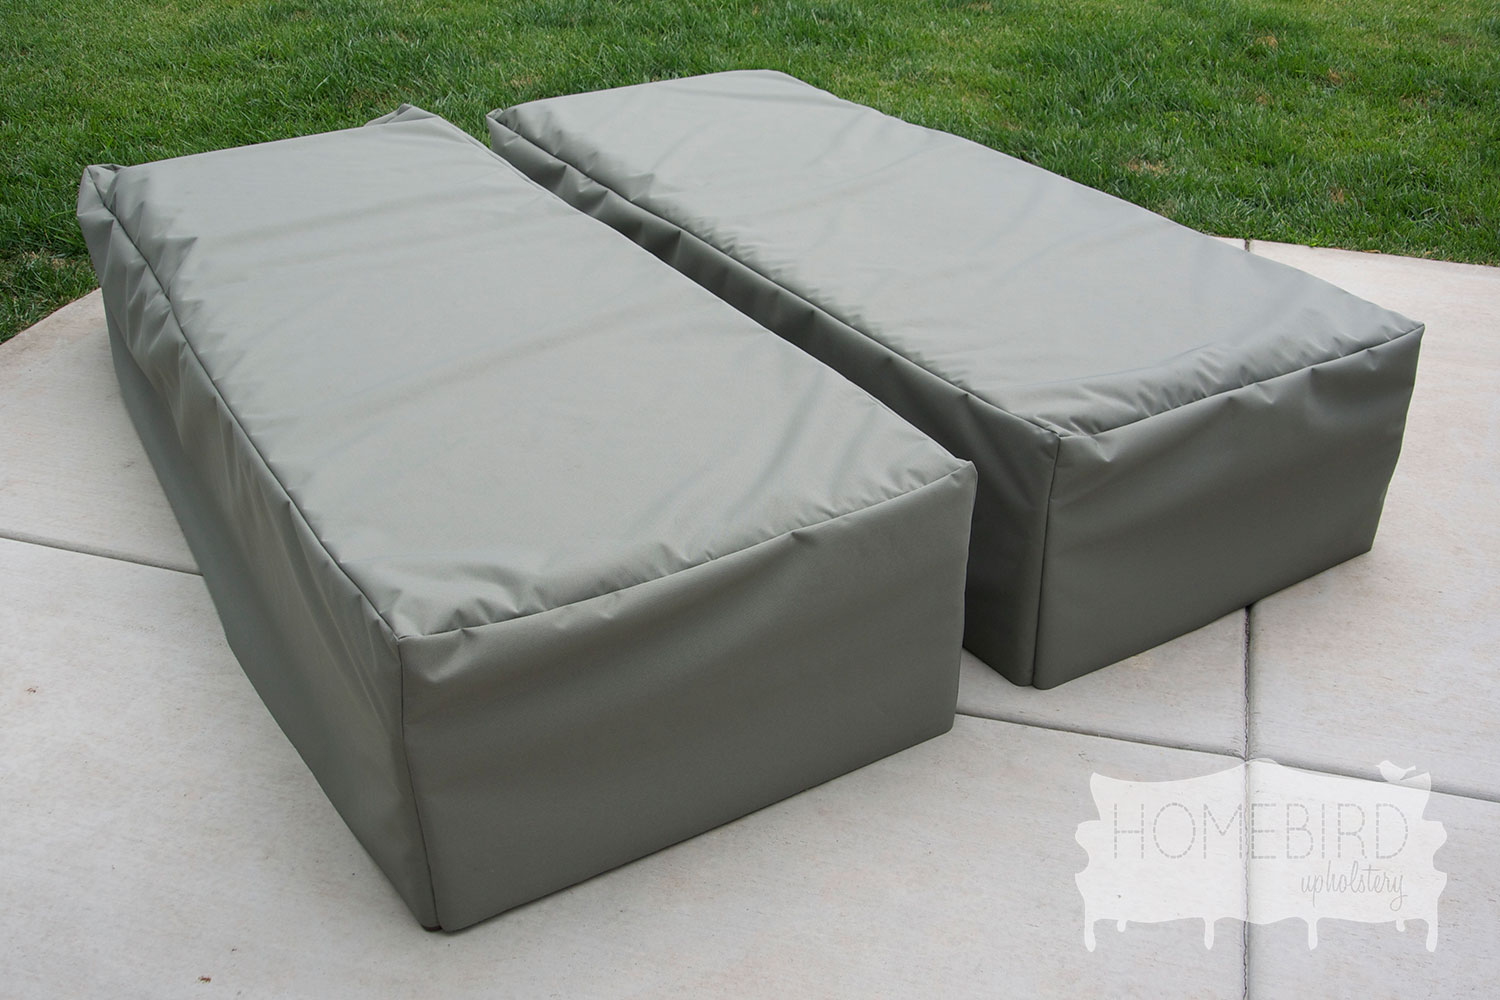 Superieur Custom Order: Patio Furniture Covers 2